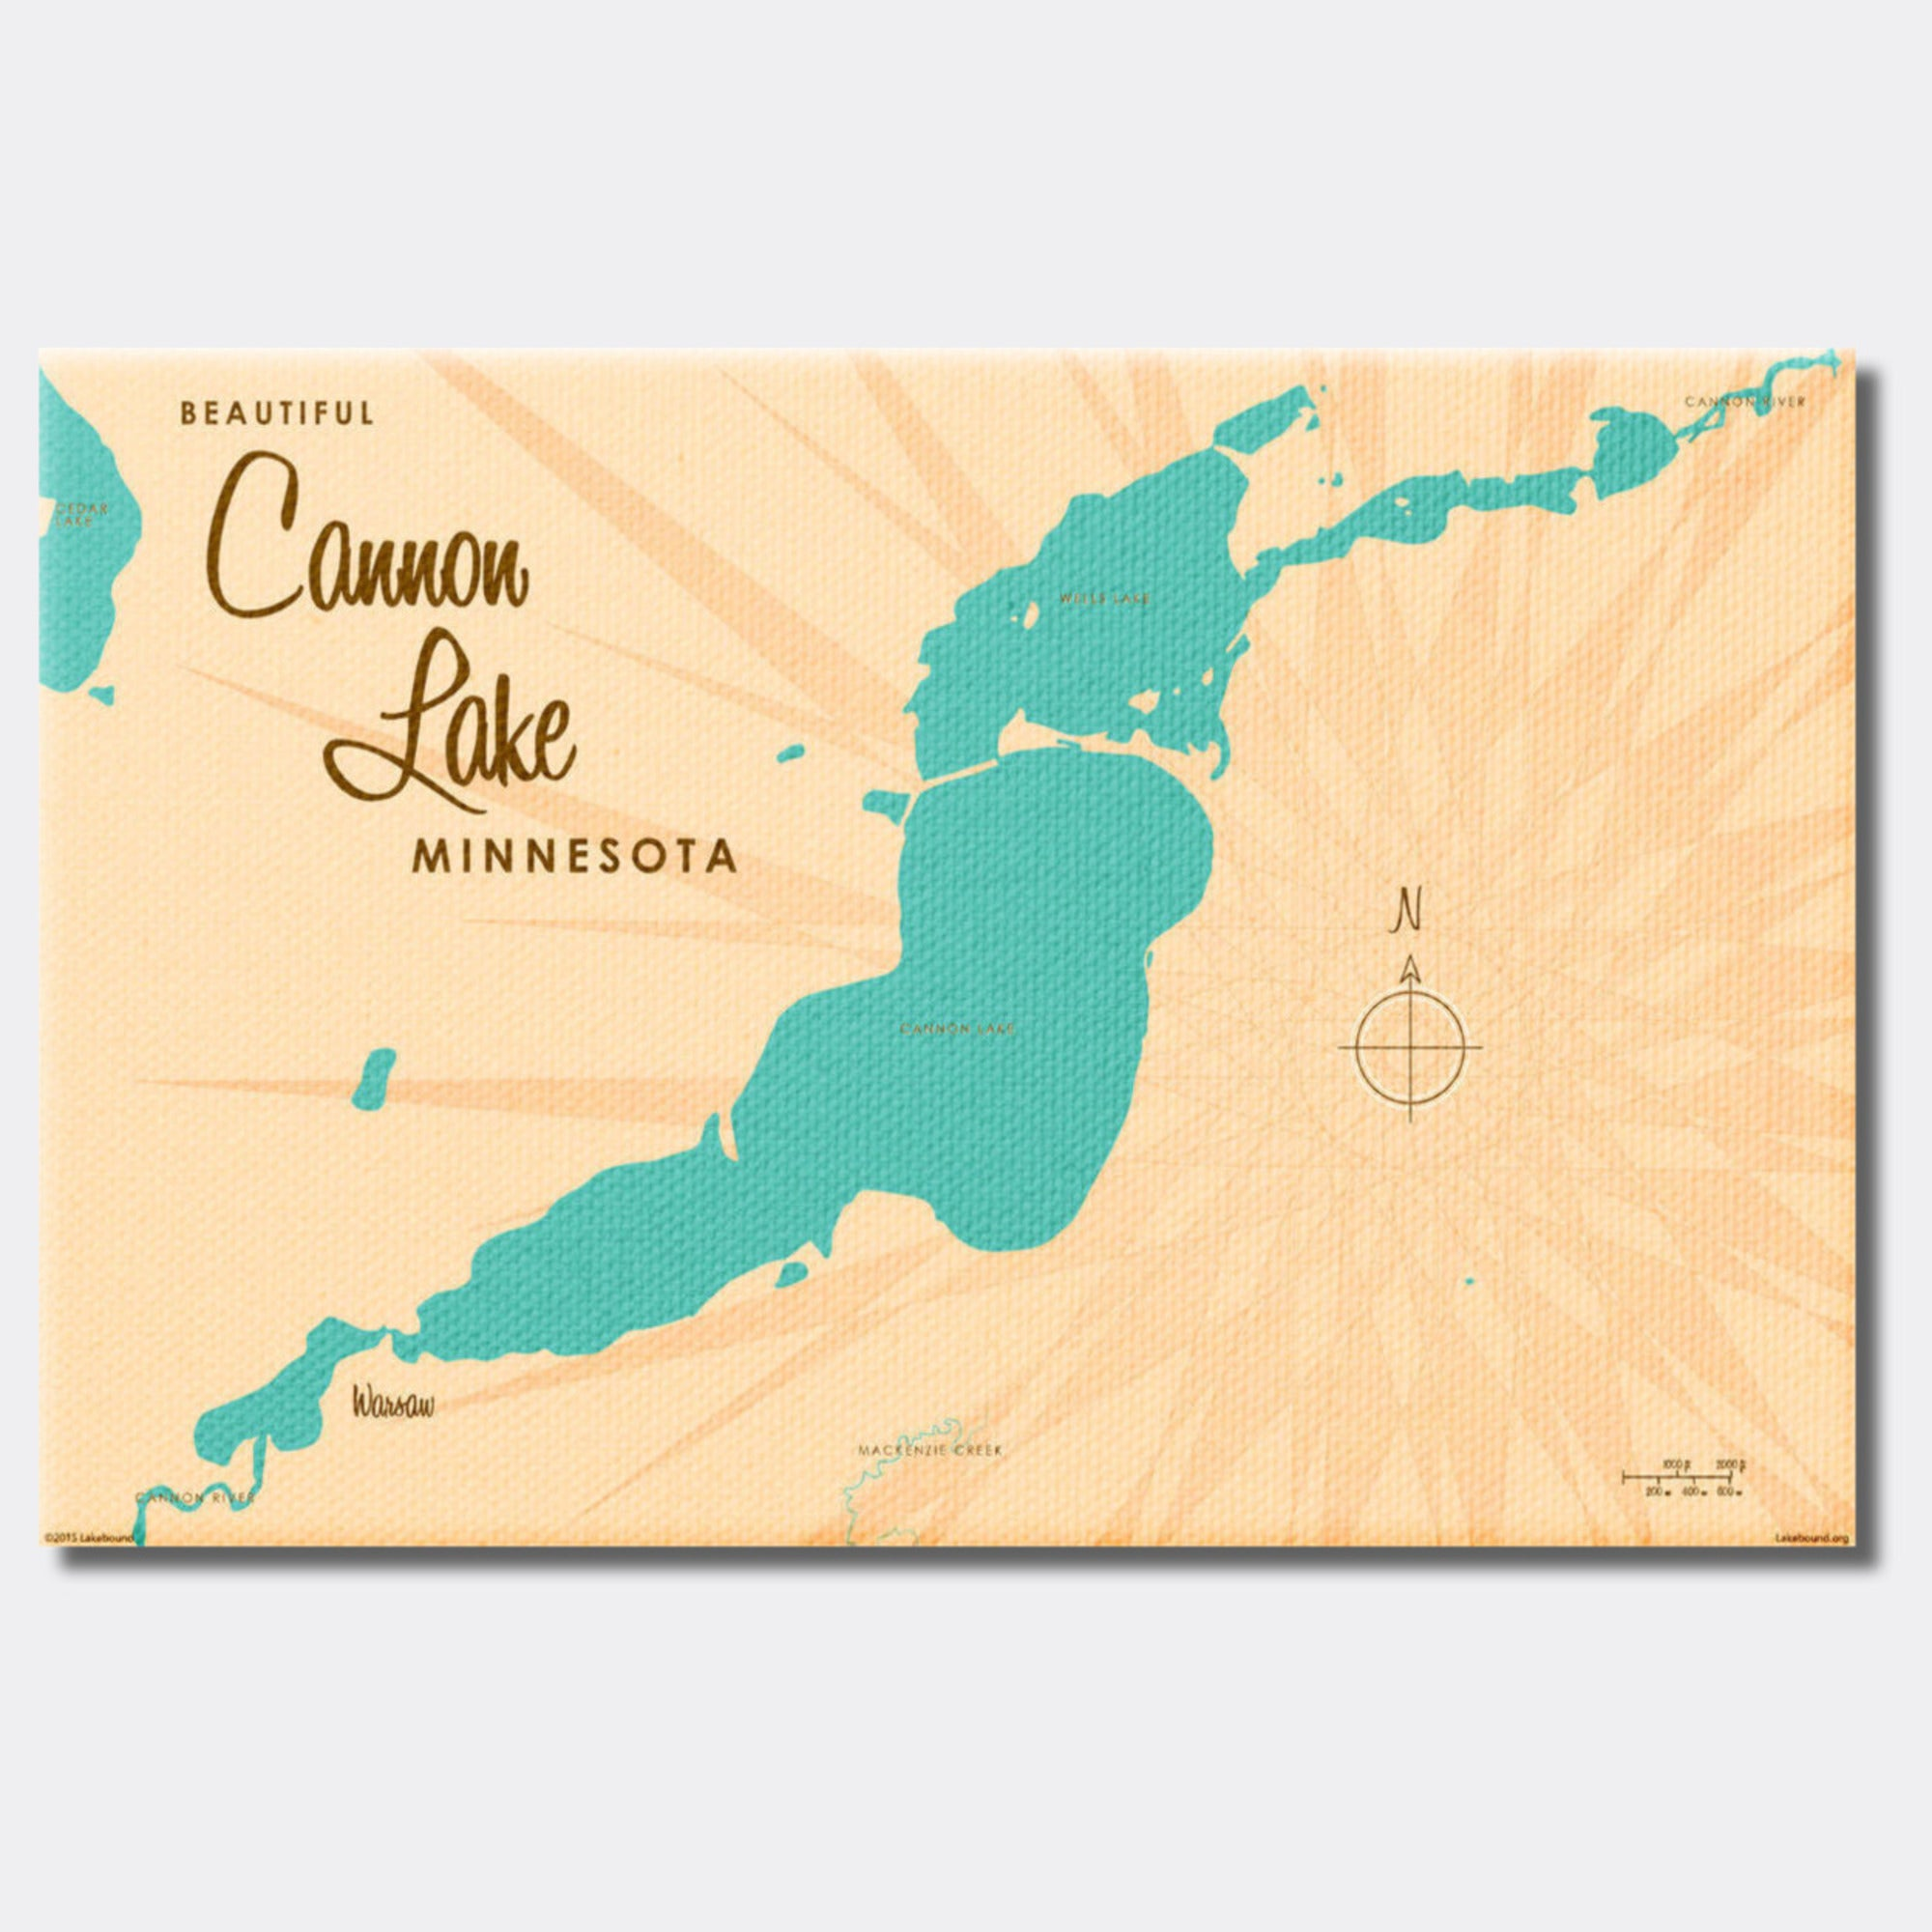 Cannon Lake Minnesota, Canvas Print